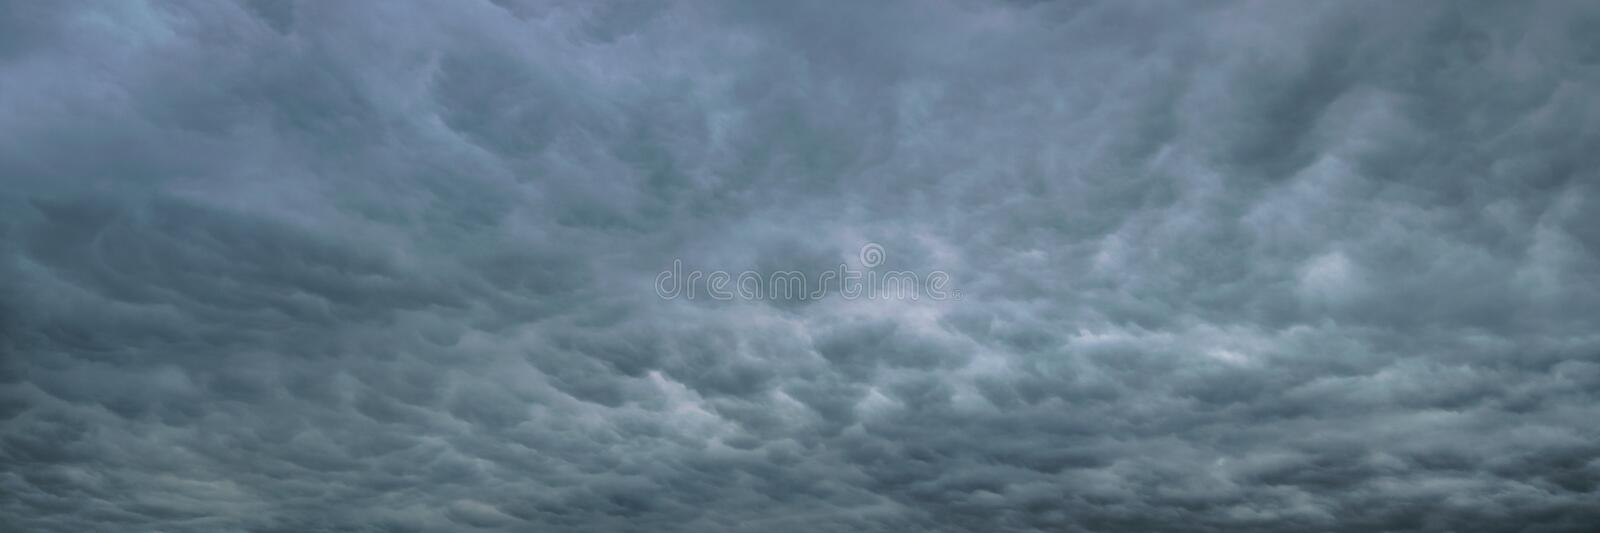 Panoramic view of bubbles in the sky, also called mammatus clouds. View of a dramatic sky with a field full of mammatus clouds stock images